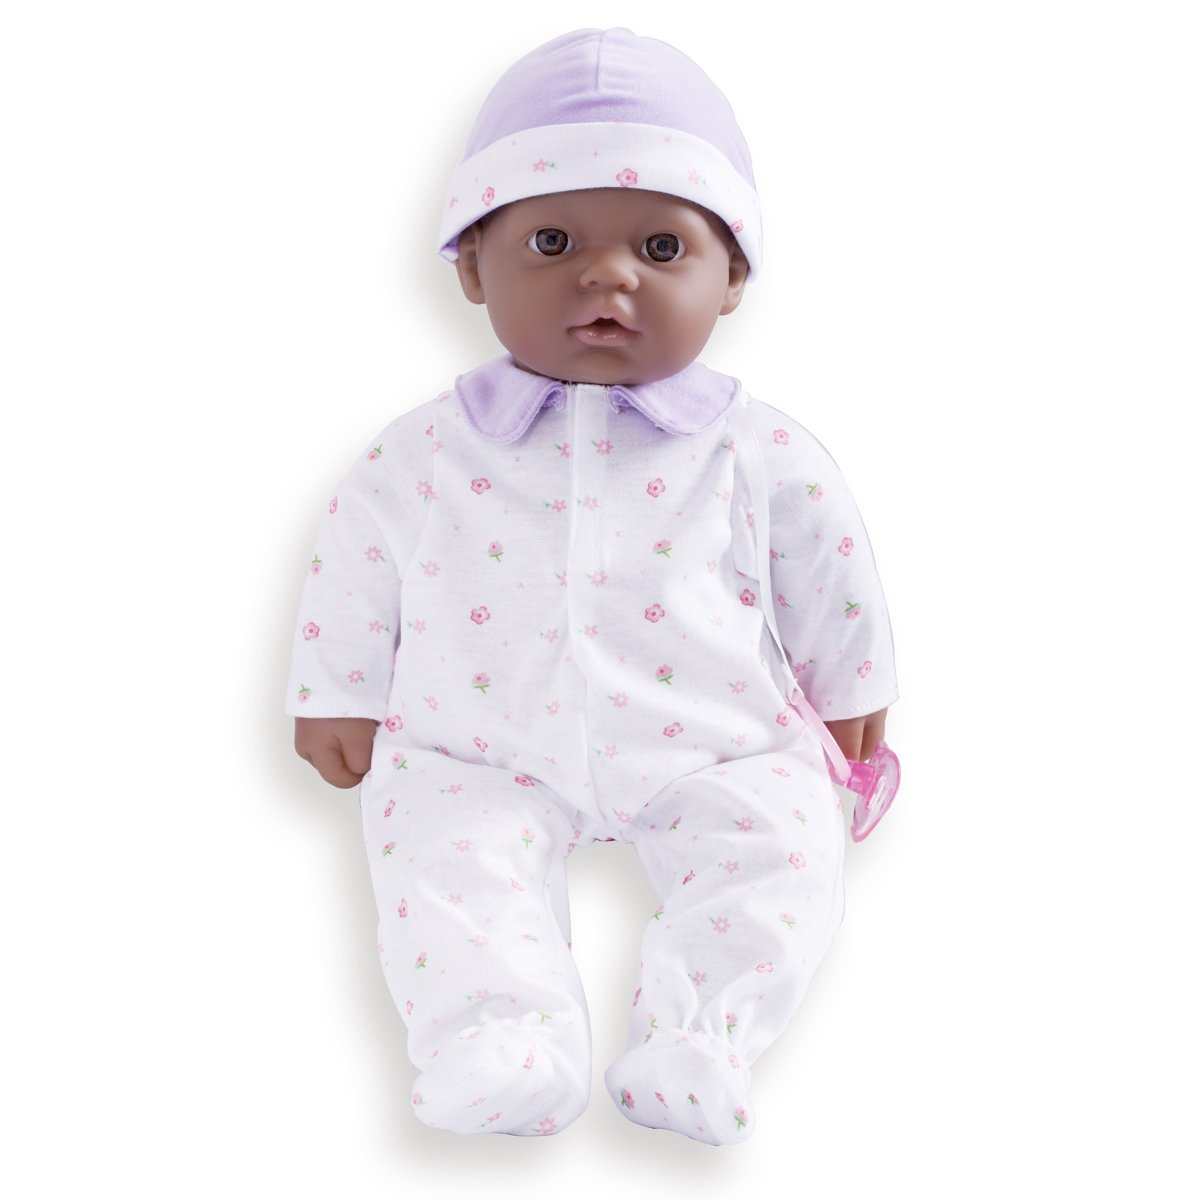 black baby dolls amazon com rh amazon com